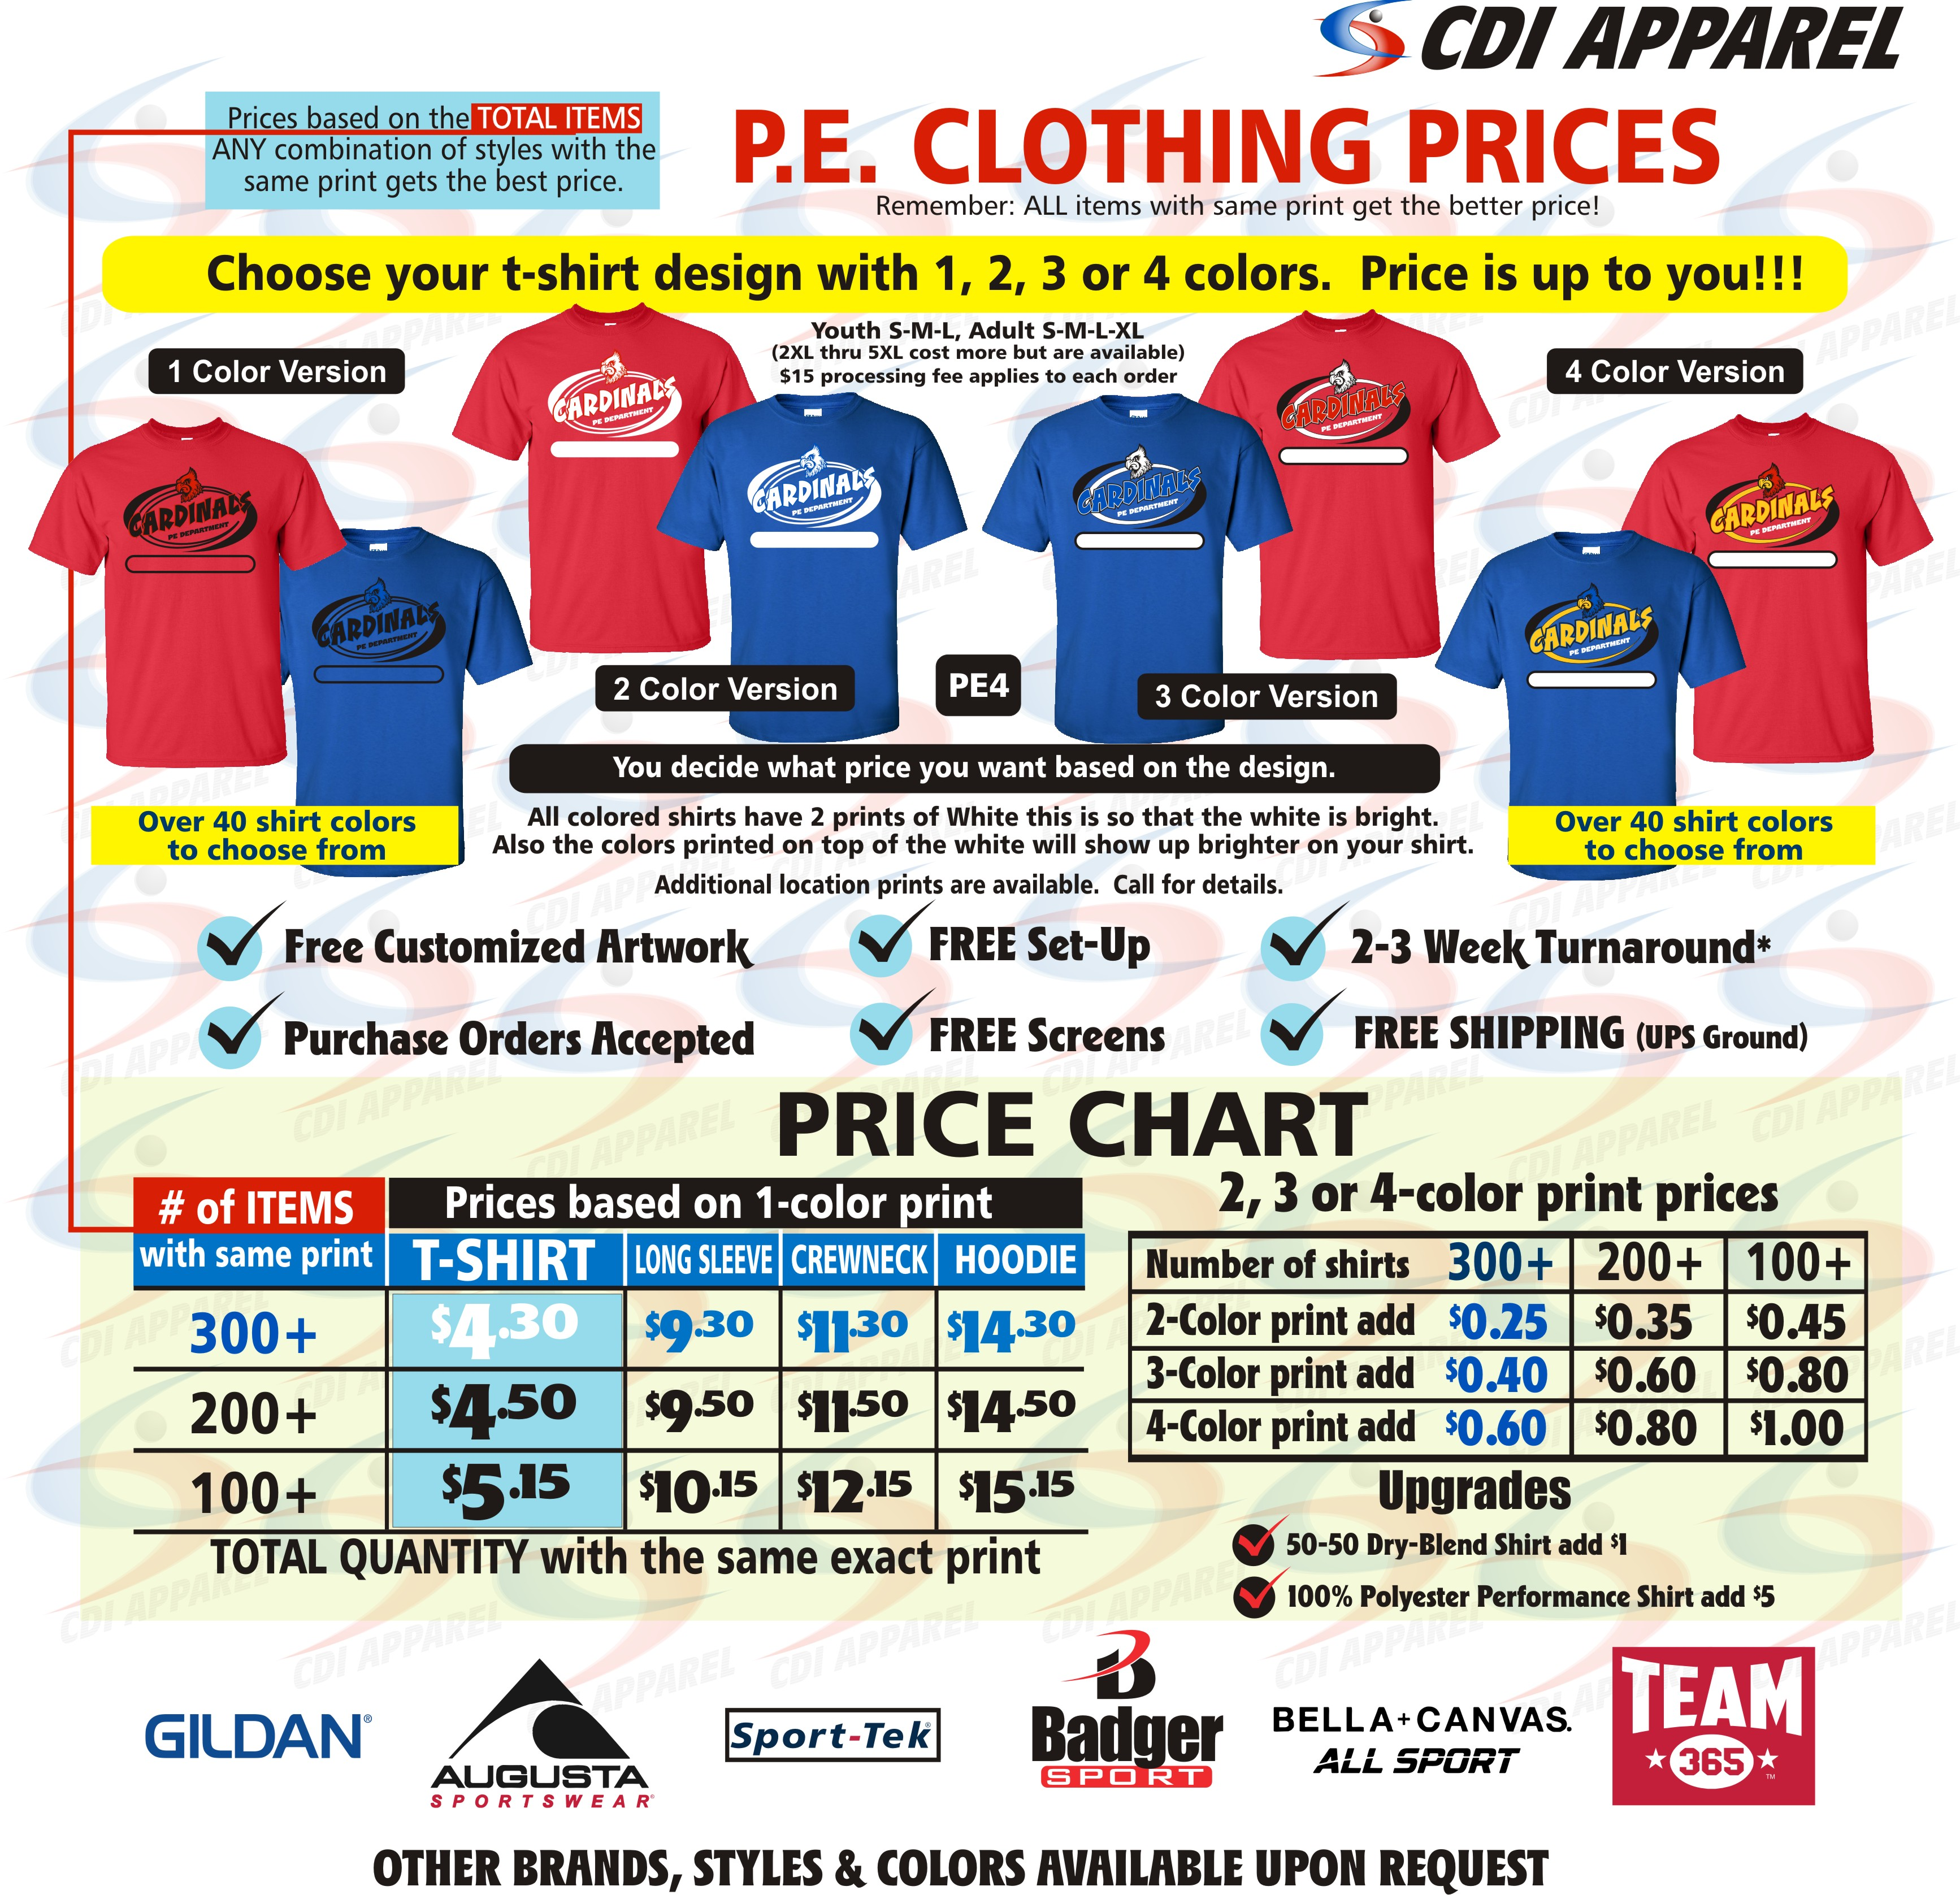 PE Clothes Pricing June 2017 Website Shirt Prices